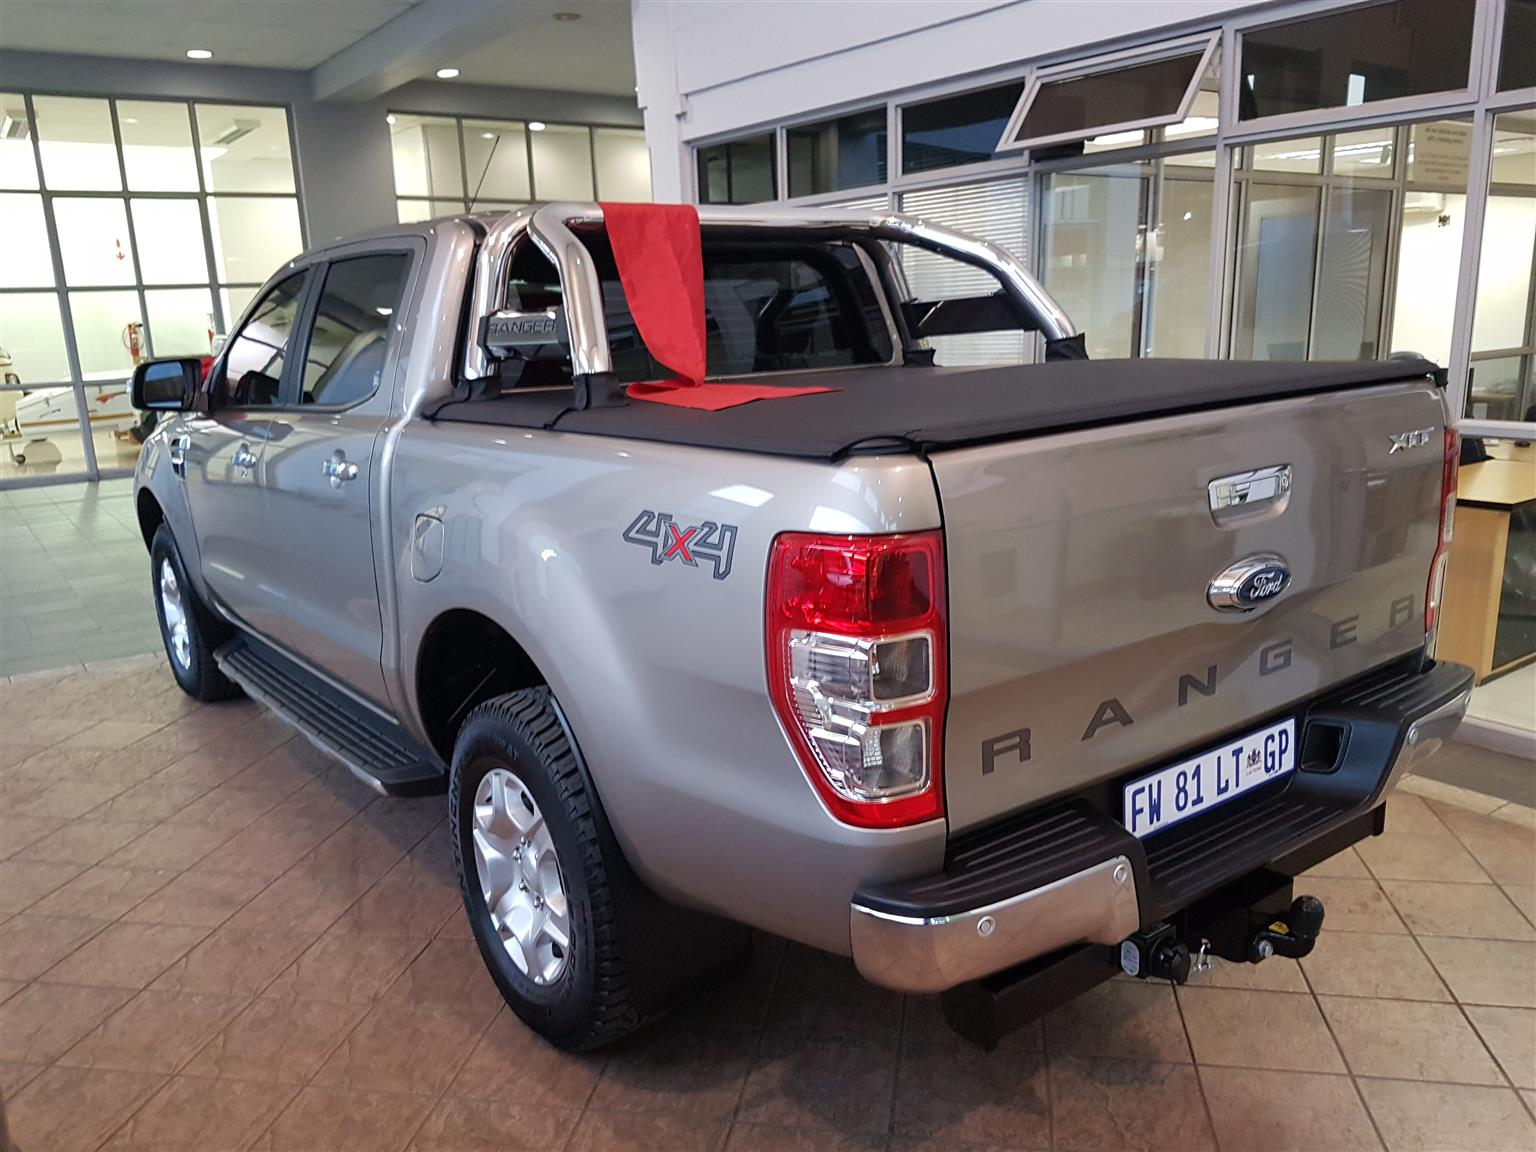 Tonneau cover for sale ford ranger double cab 2017 model with roll bar